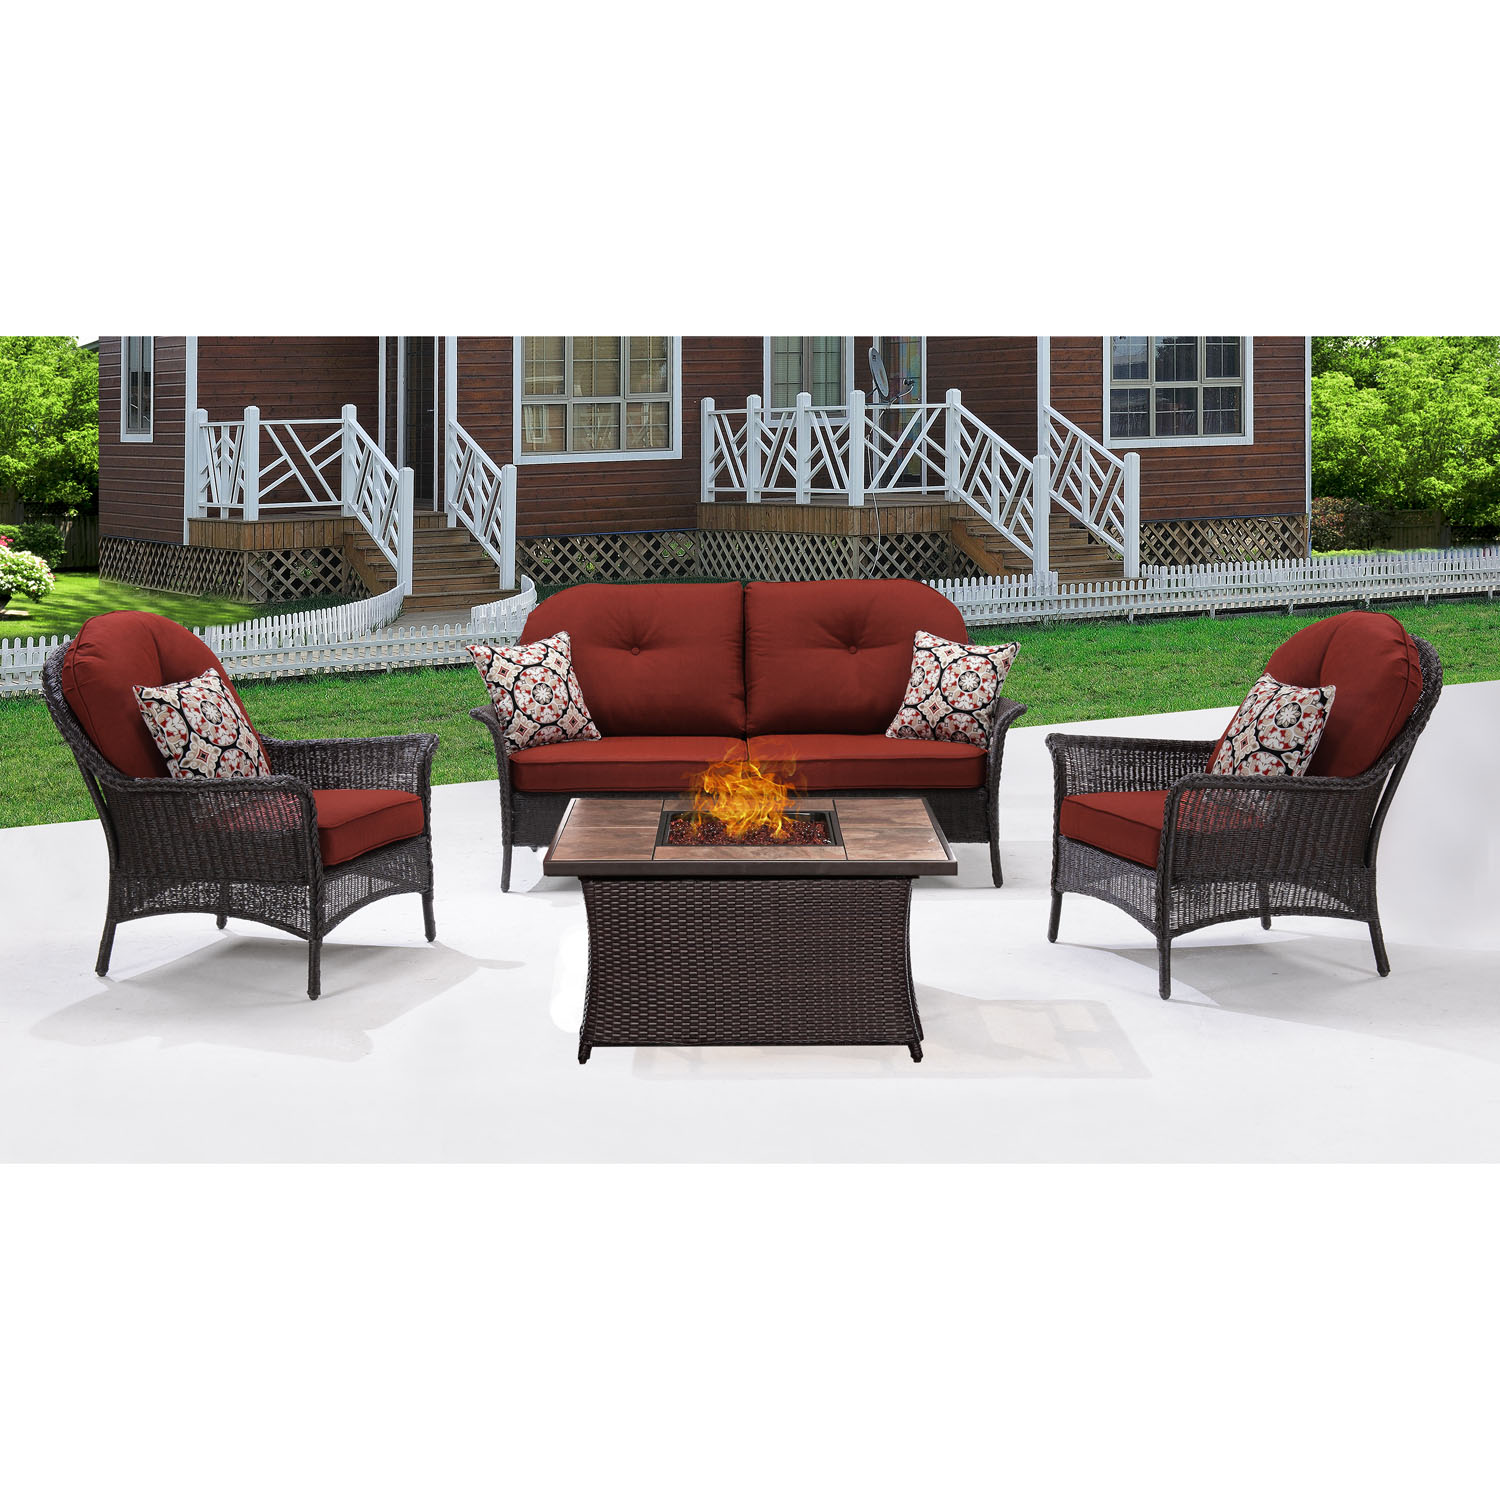 Hanover San Marino 4-Piece Woven Fire Pit Set with Faux-Stone Tile Top